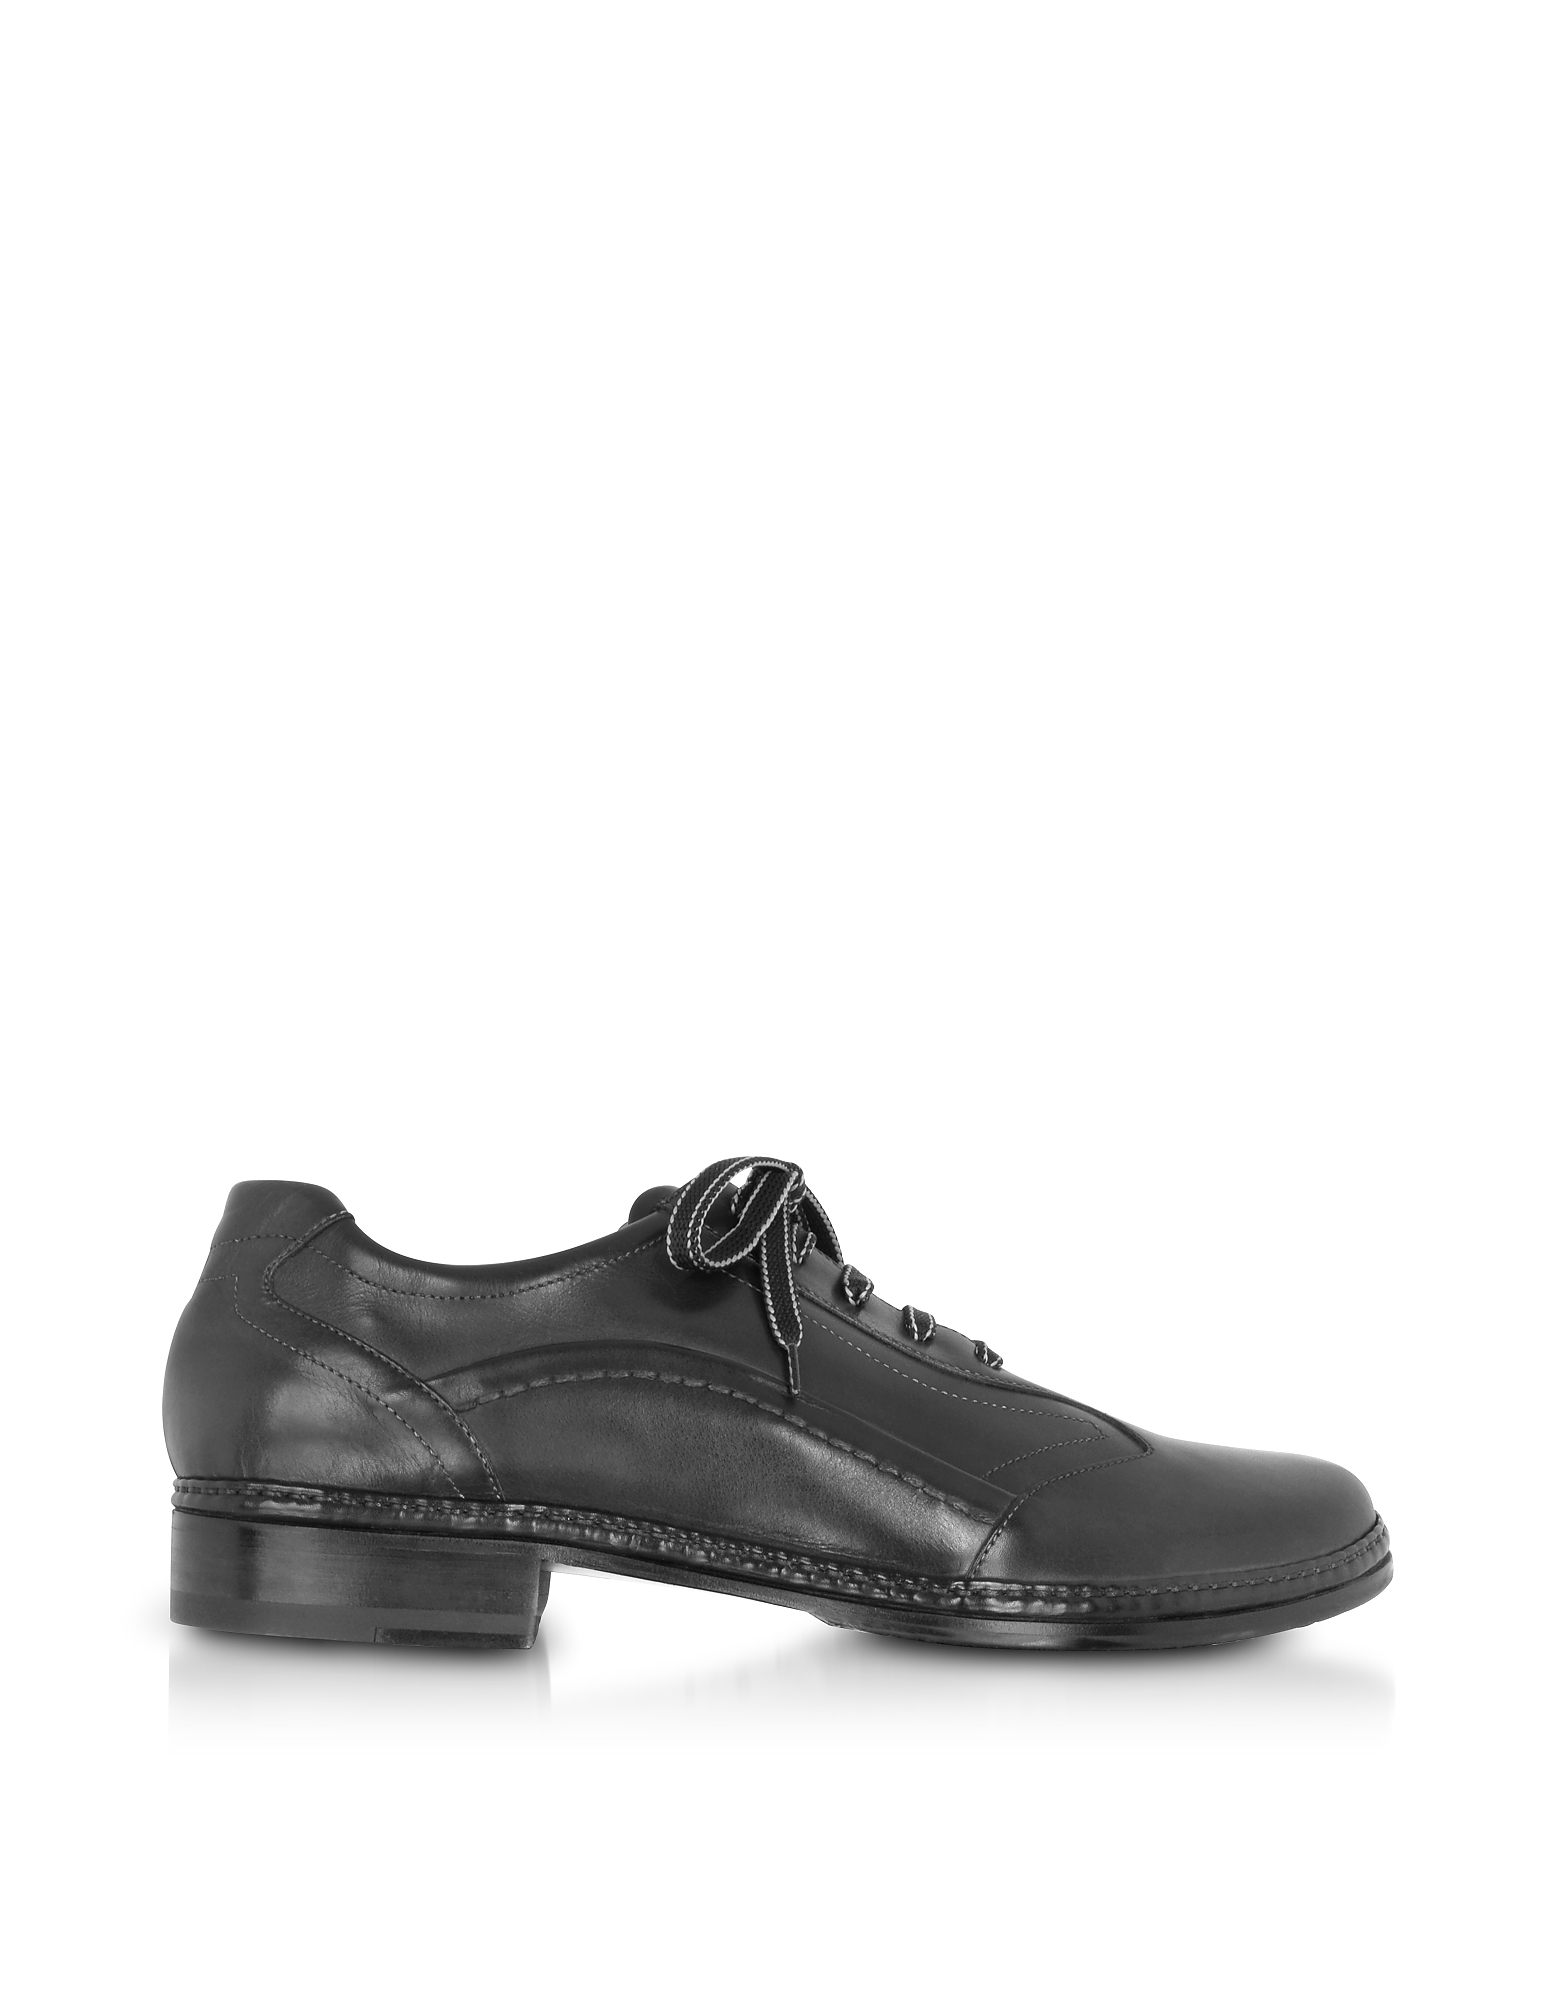 Image of Pakerson Designer Shoes, Black Italian Handmade Leather Lace-up Shoes